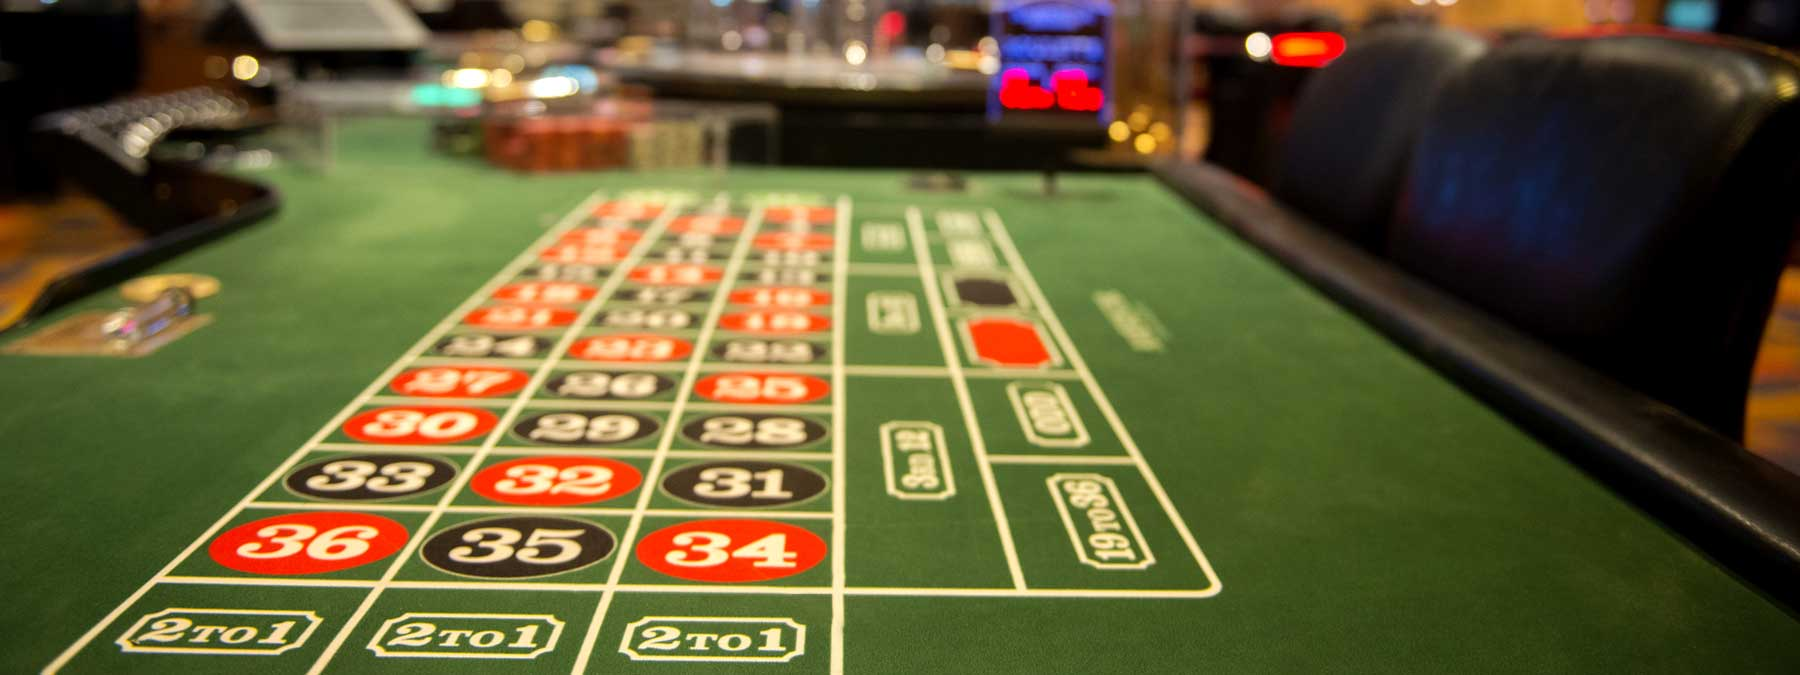 Etiquettes in Table Games: Do's and Don'ts | Casino Ad